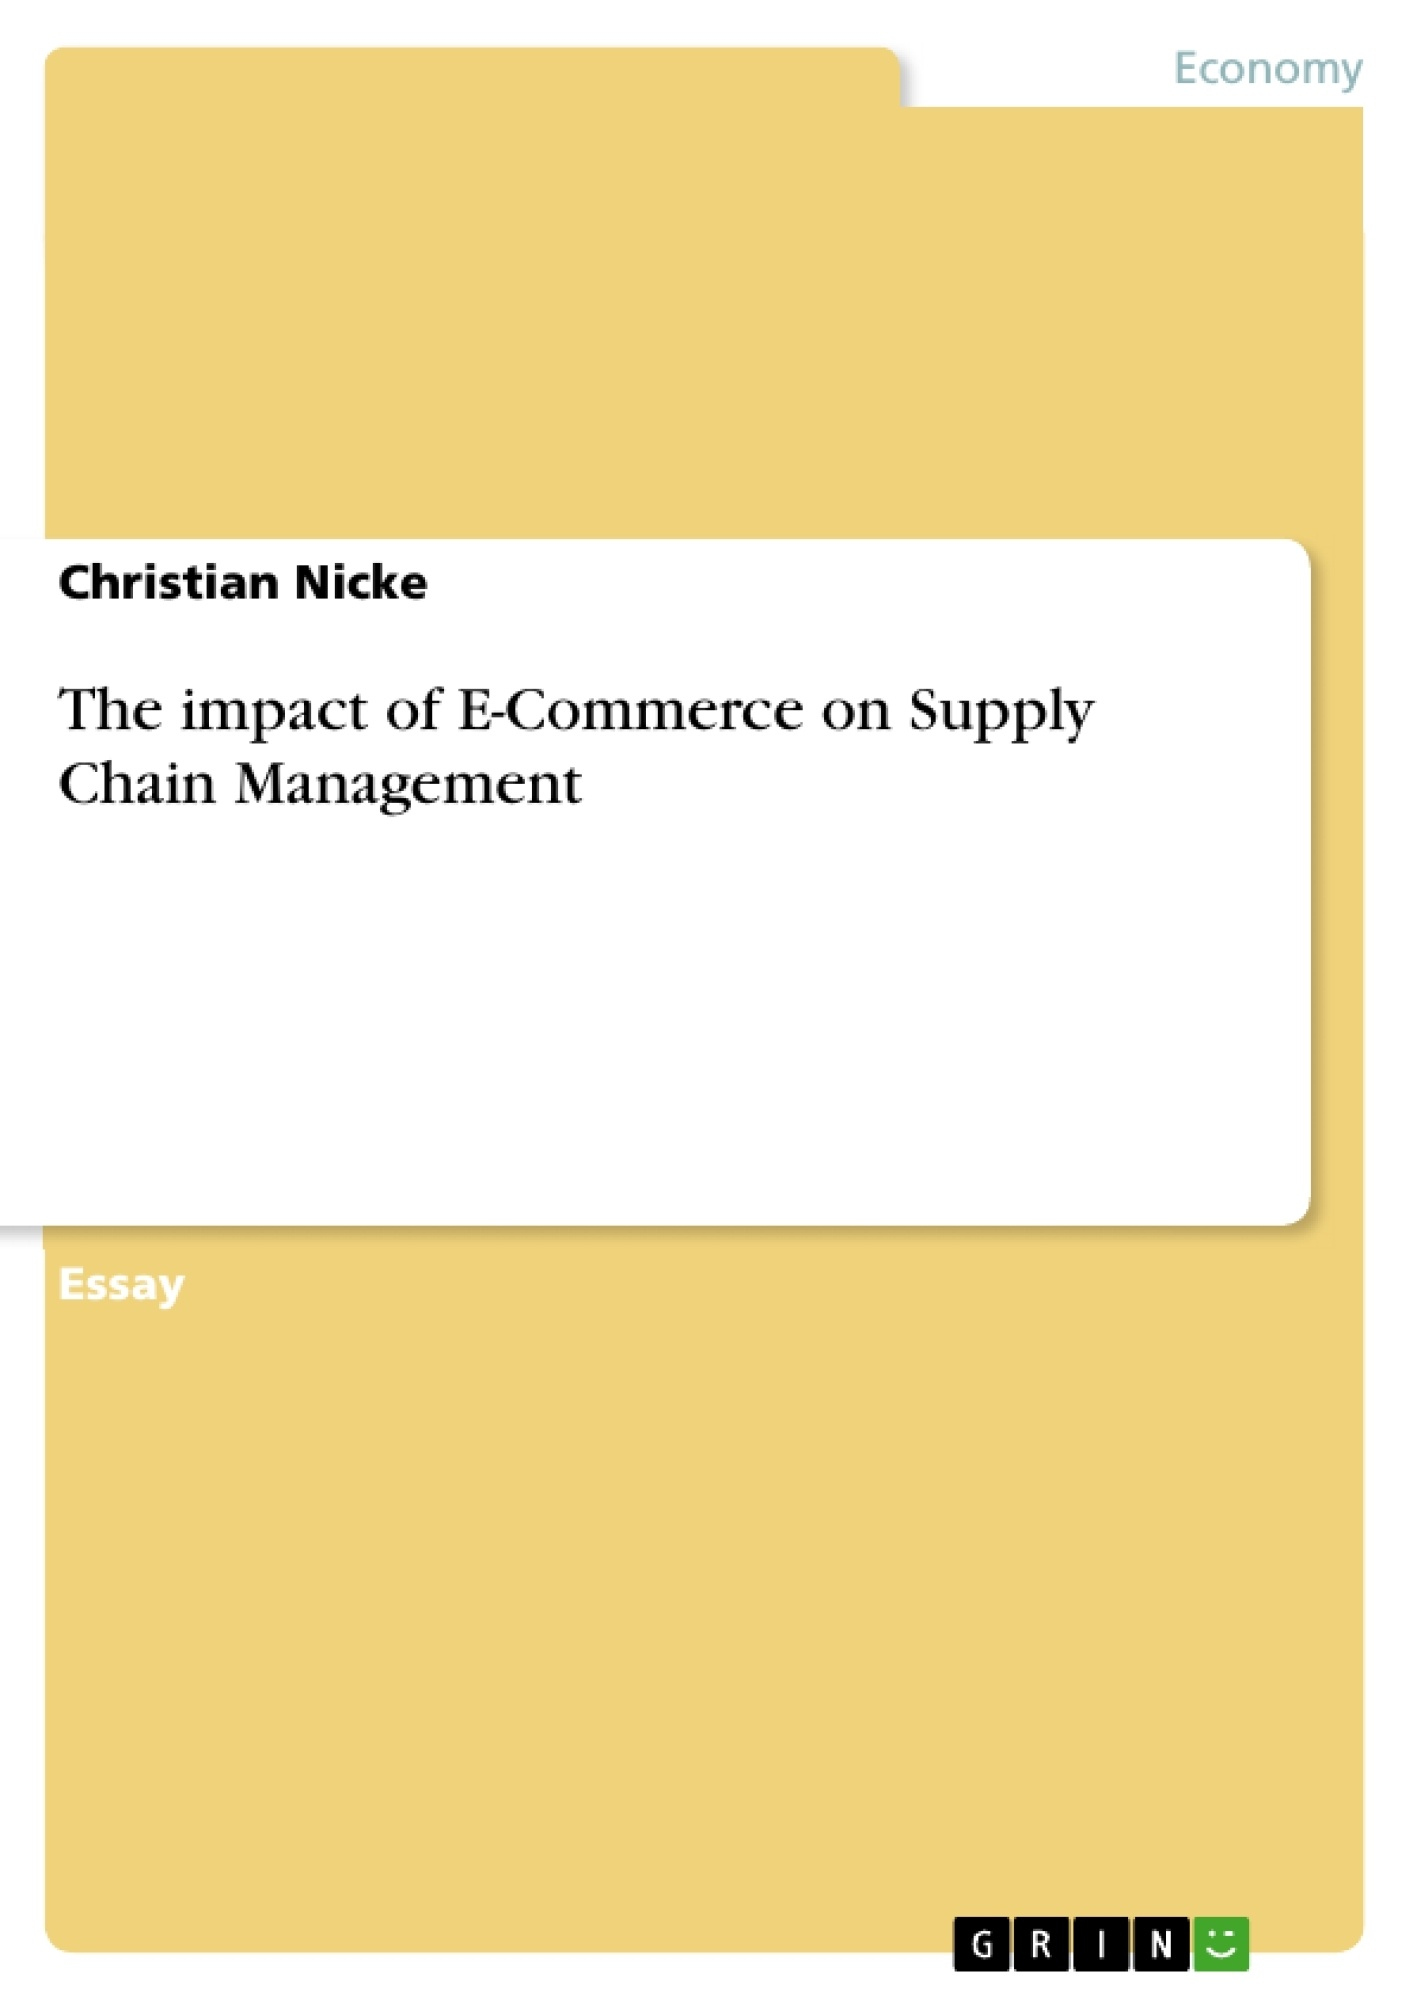 Title: The impact of E-Commerce on Supply Chain Management